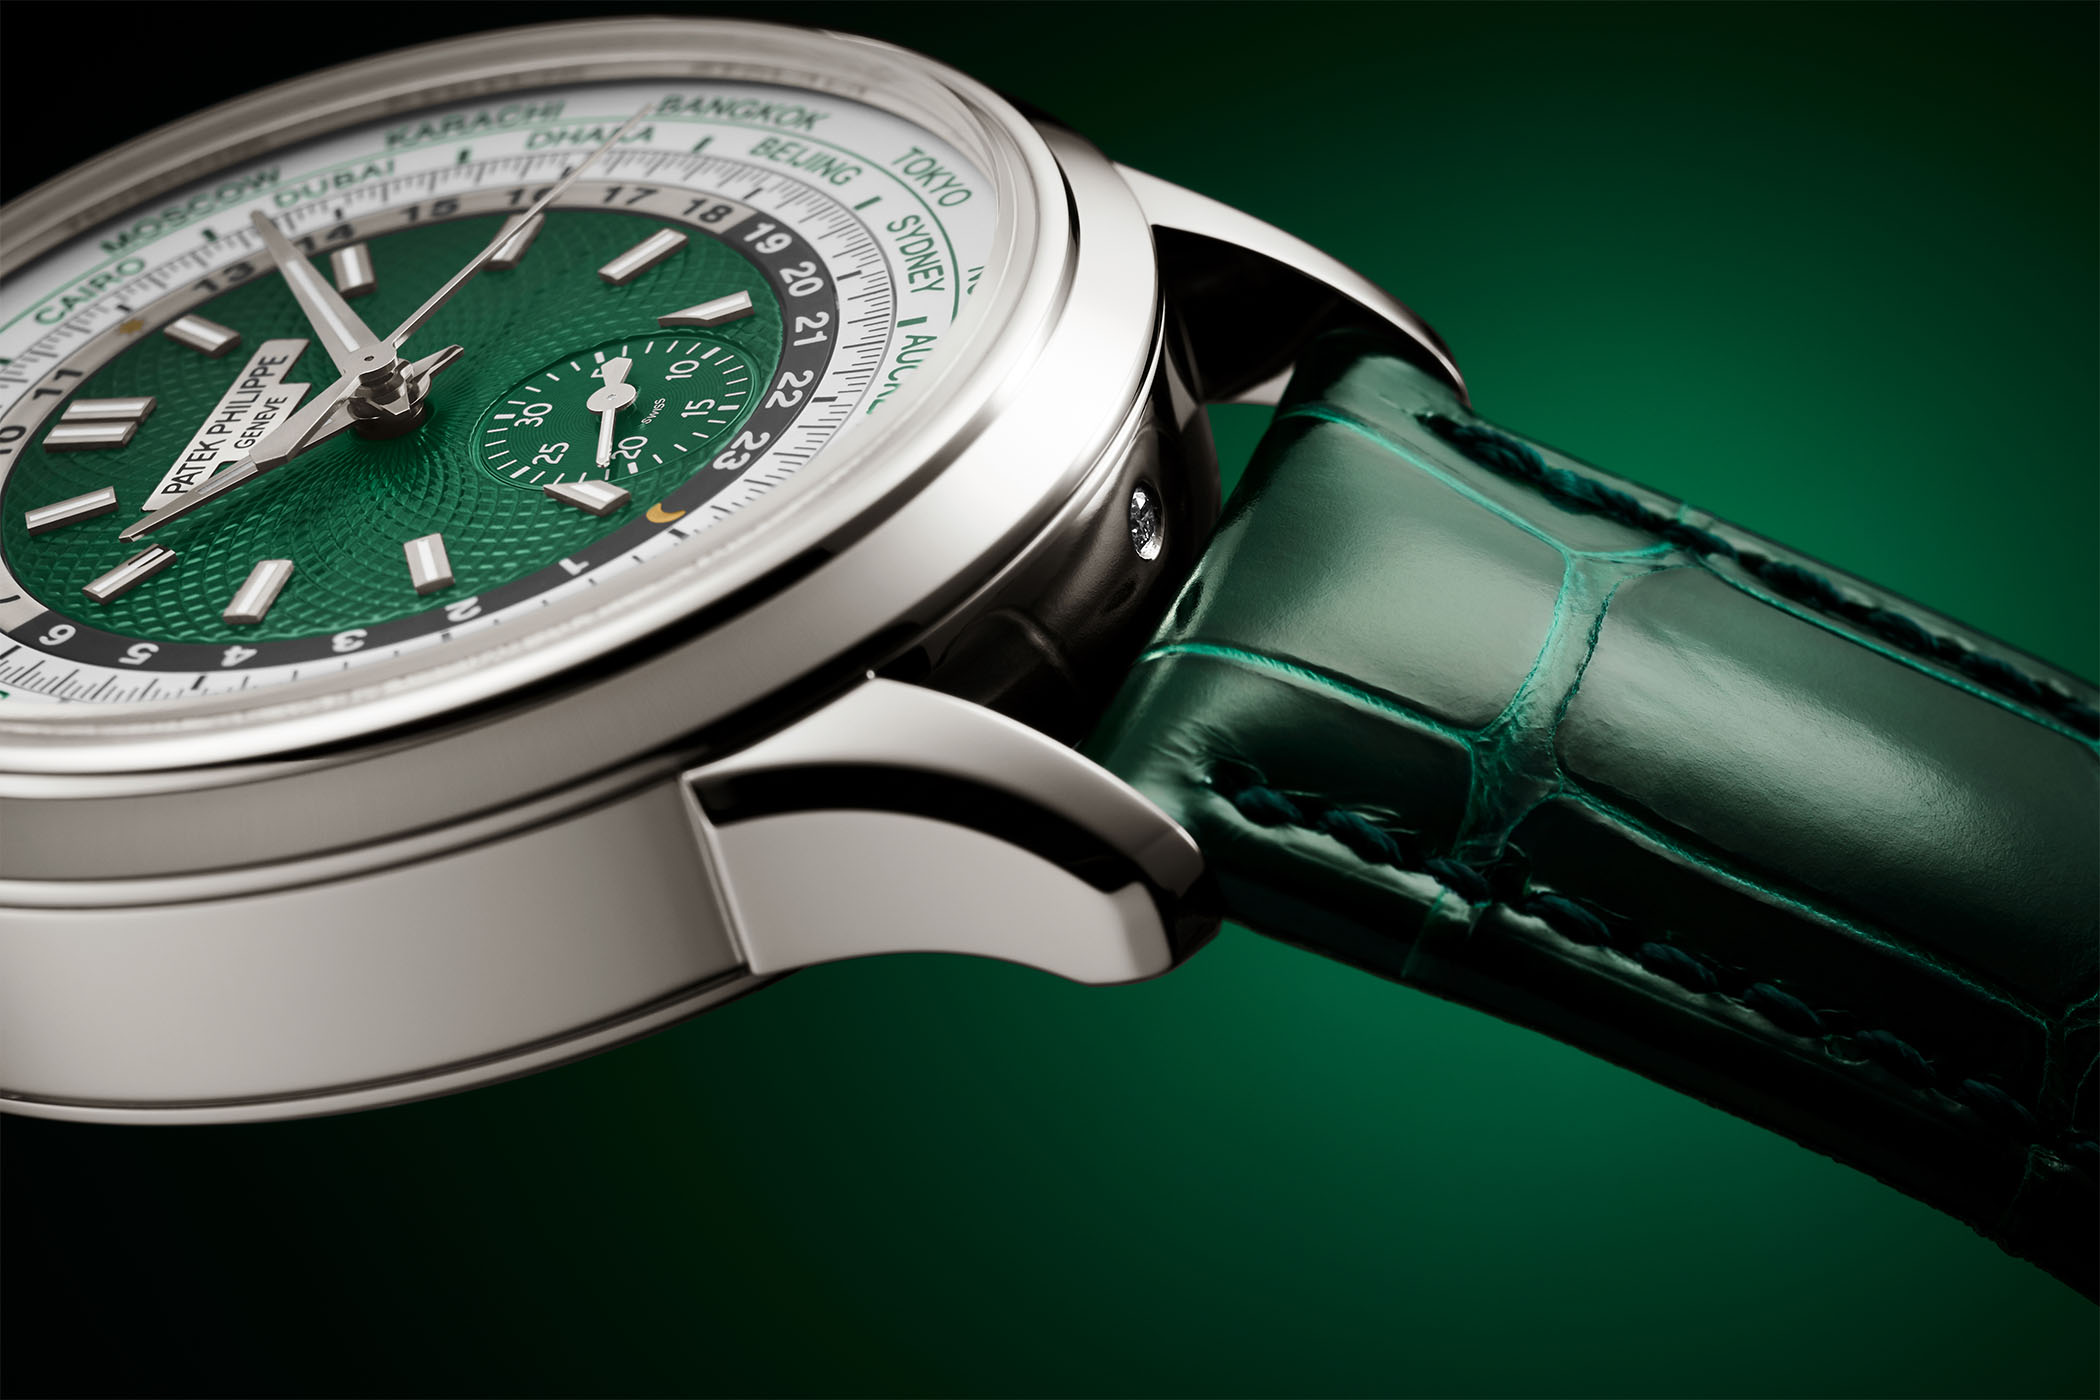 Patek Philippe Self-winding World Time flyback chronograph 5930P-001 platinum green dial